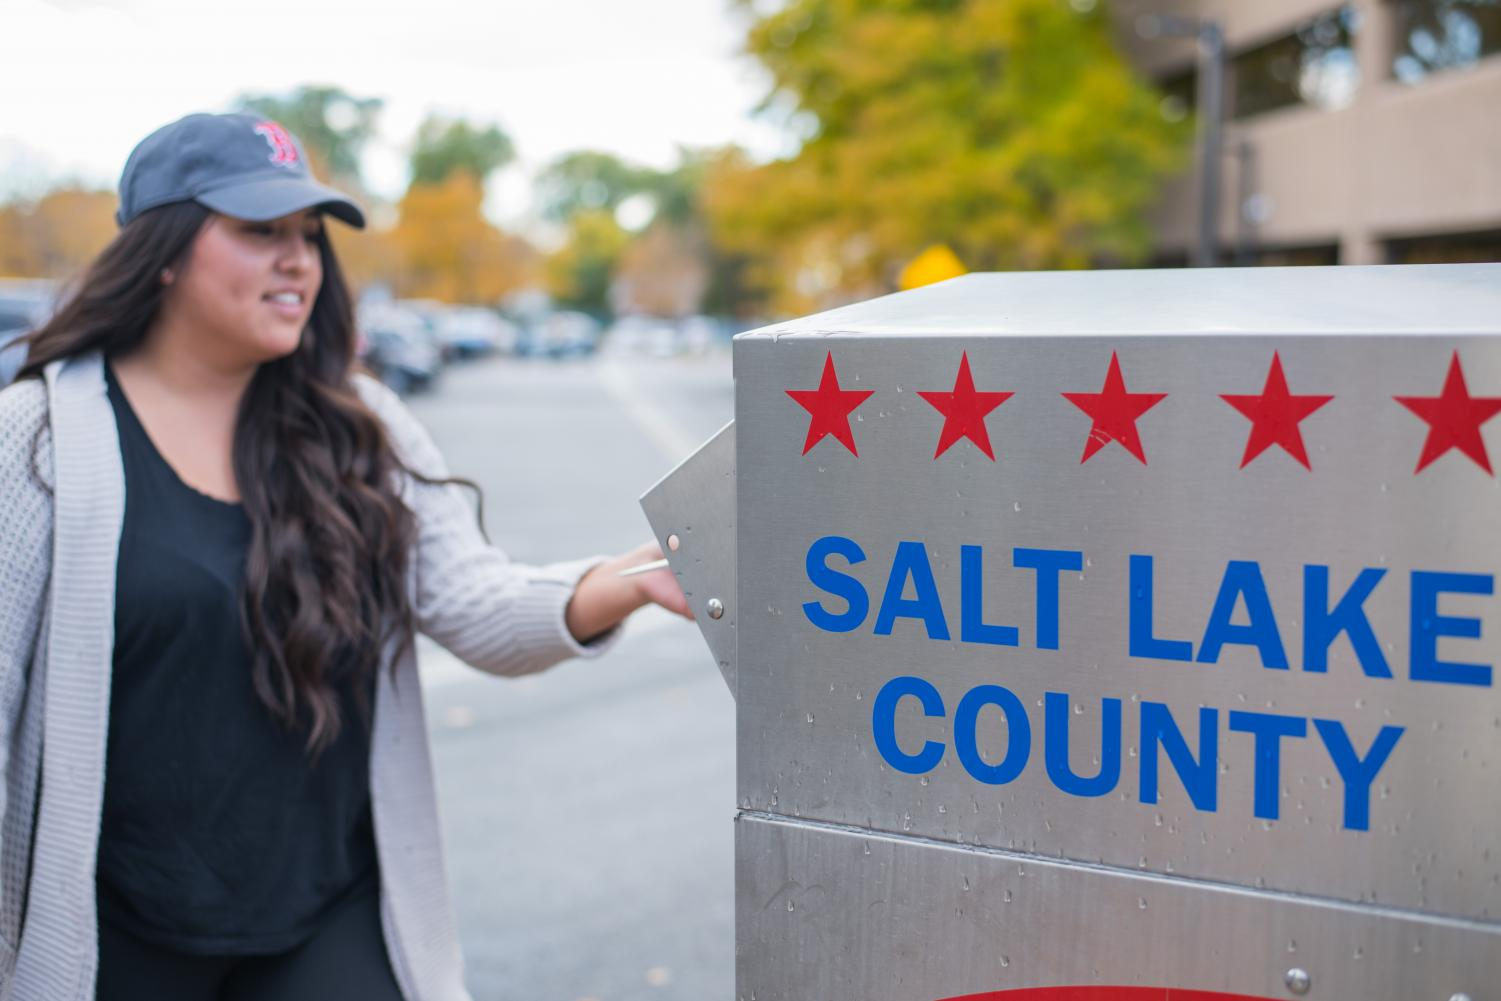 People casting their votes during the Midterm Elections 2018 at the Salt Lake County Building in Salt Lake City, UT on Tuesday, Oct. 23, 2018. (Photo by Curtis Lin | Daily Utah Chronicle)